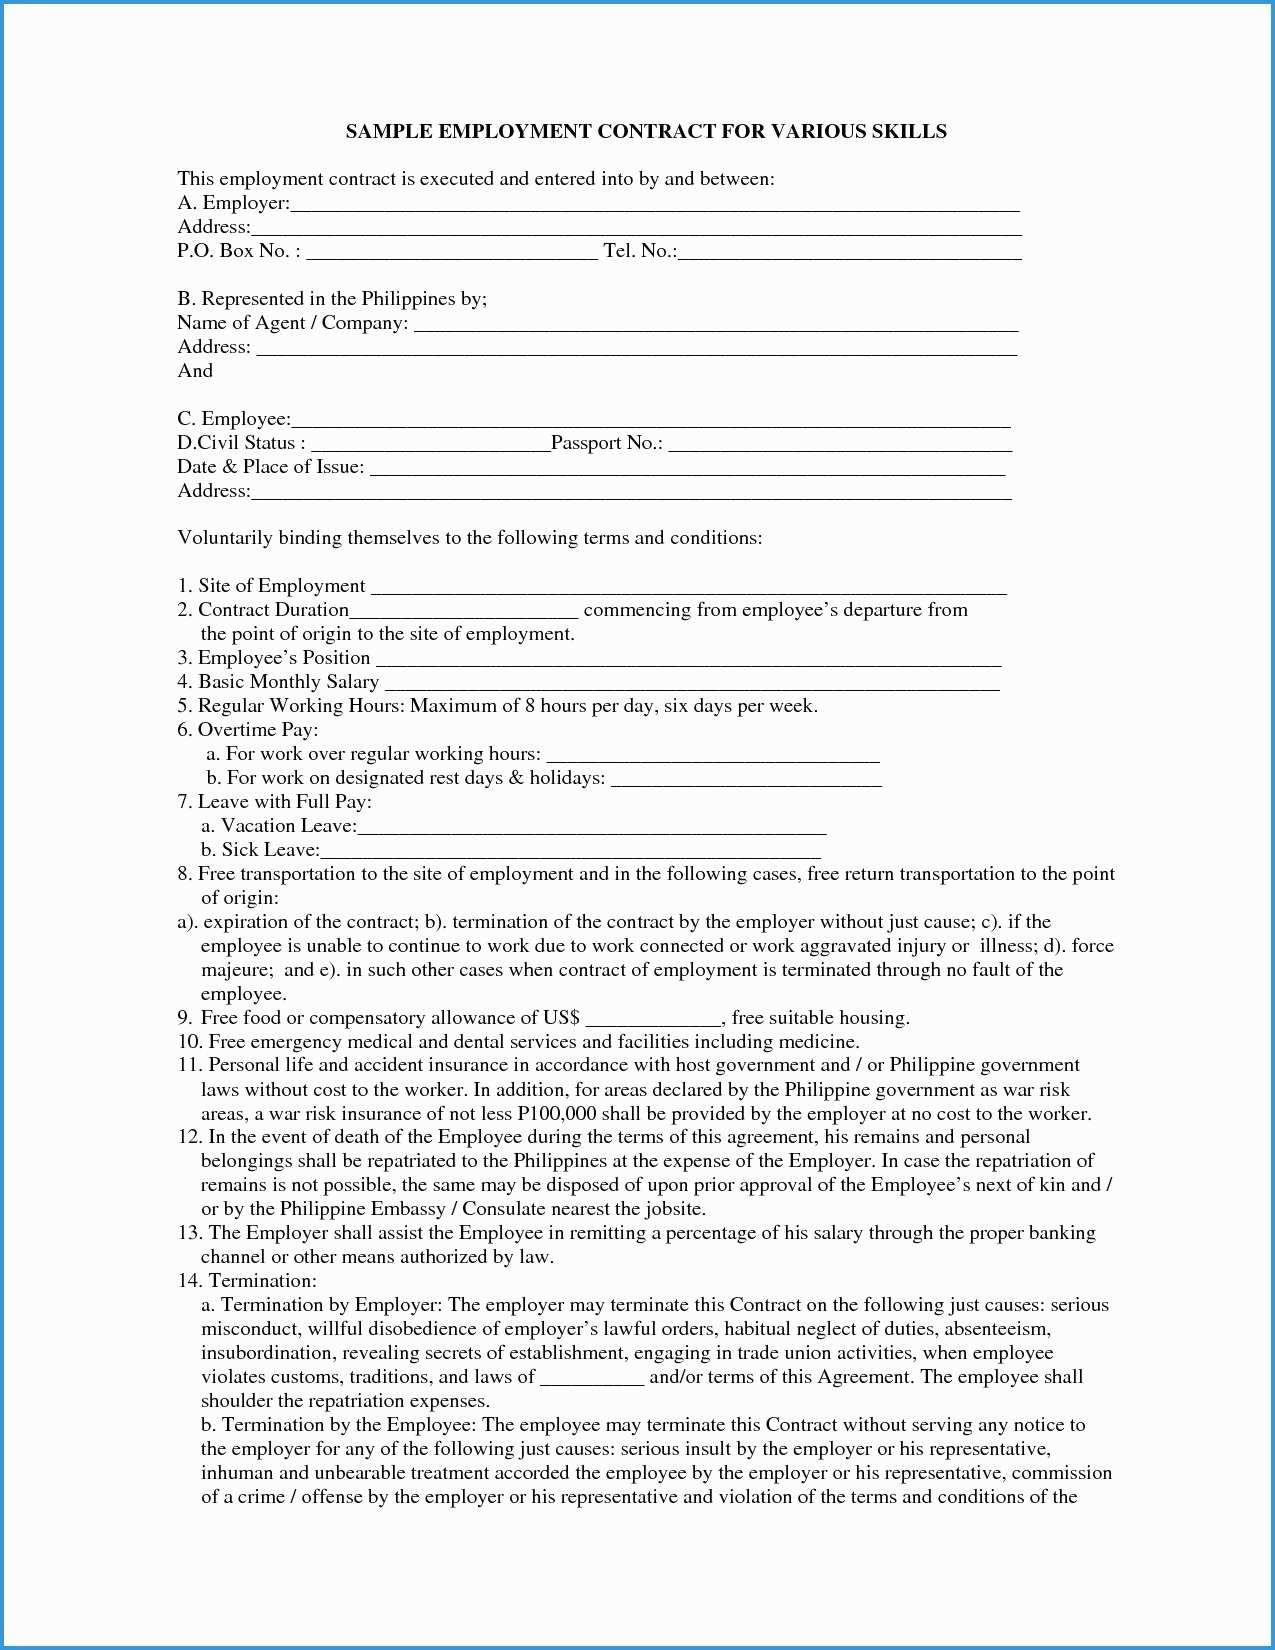 Casual Employment Contract Template Philippines